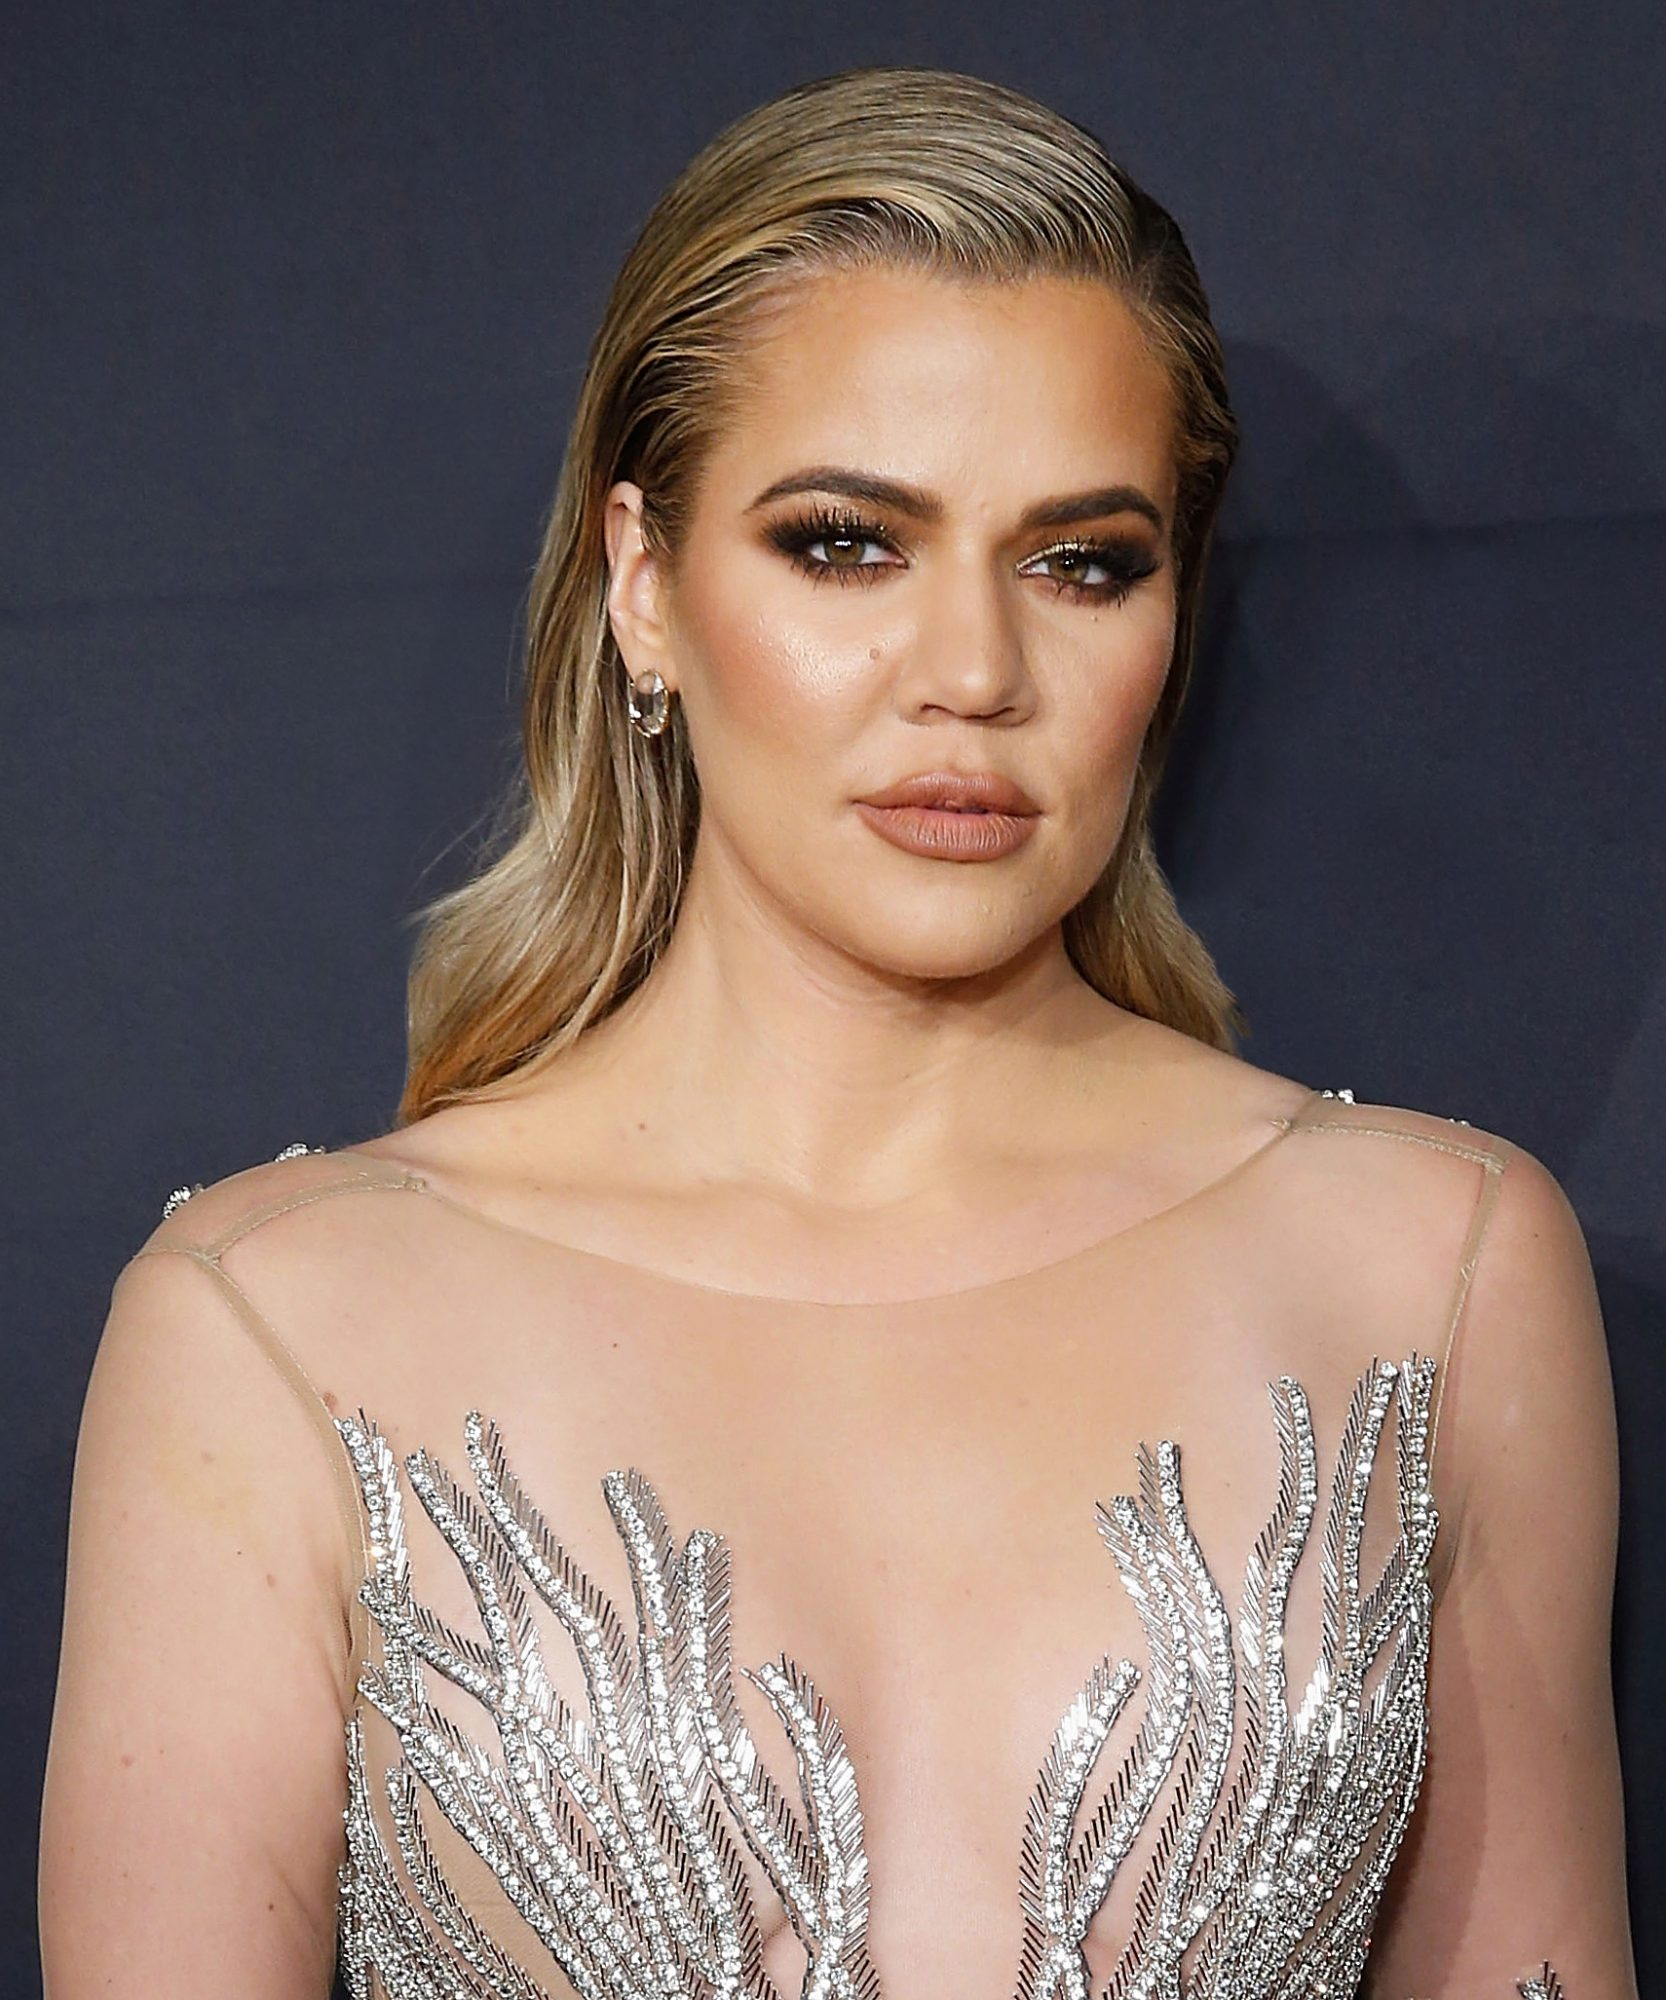 """Khloé Kardashian Recommends Wipes for Your """"Lady Parts,"""" Gynecologists Disagree"""